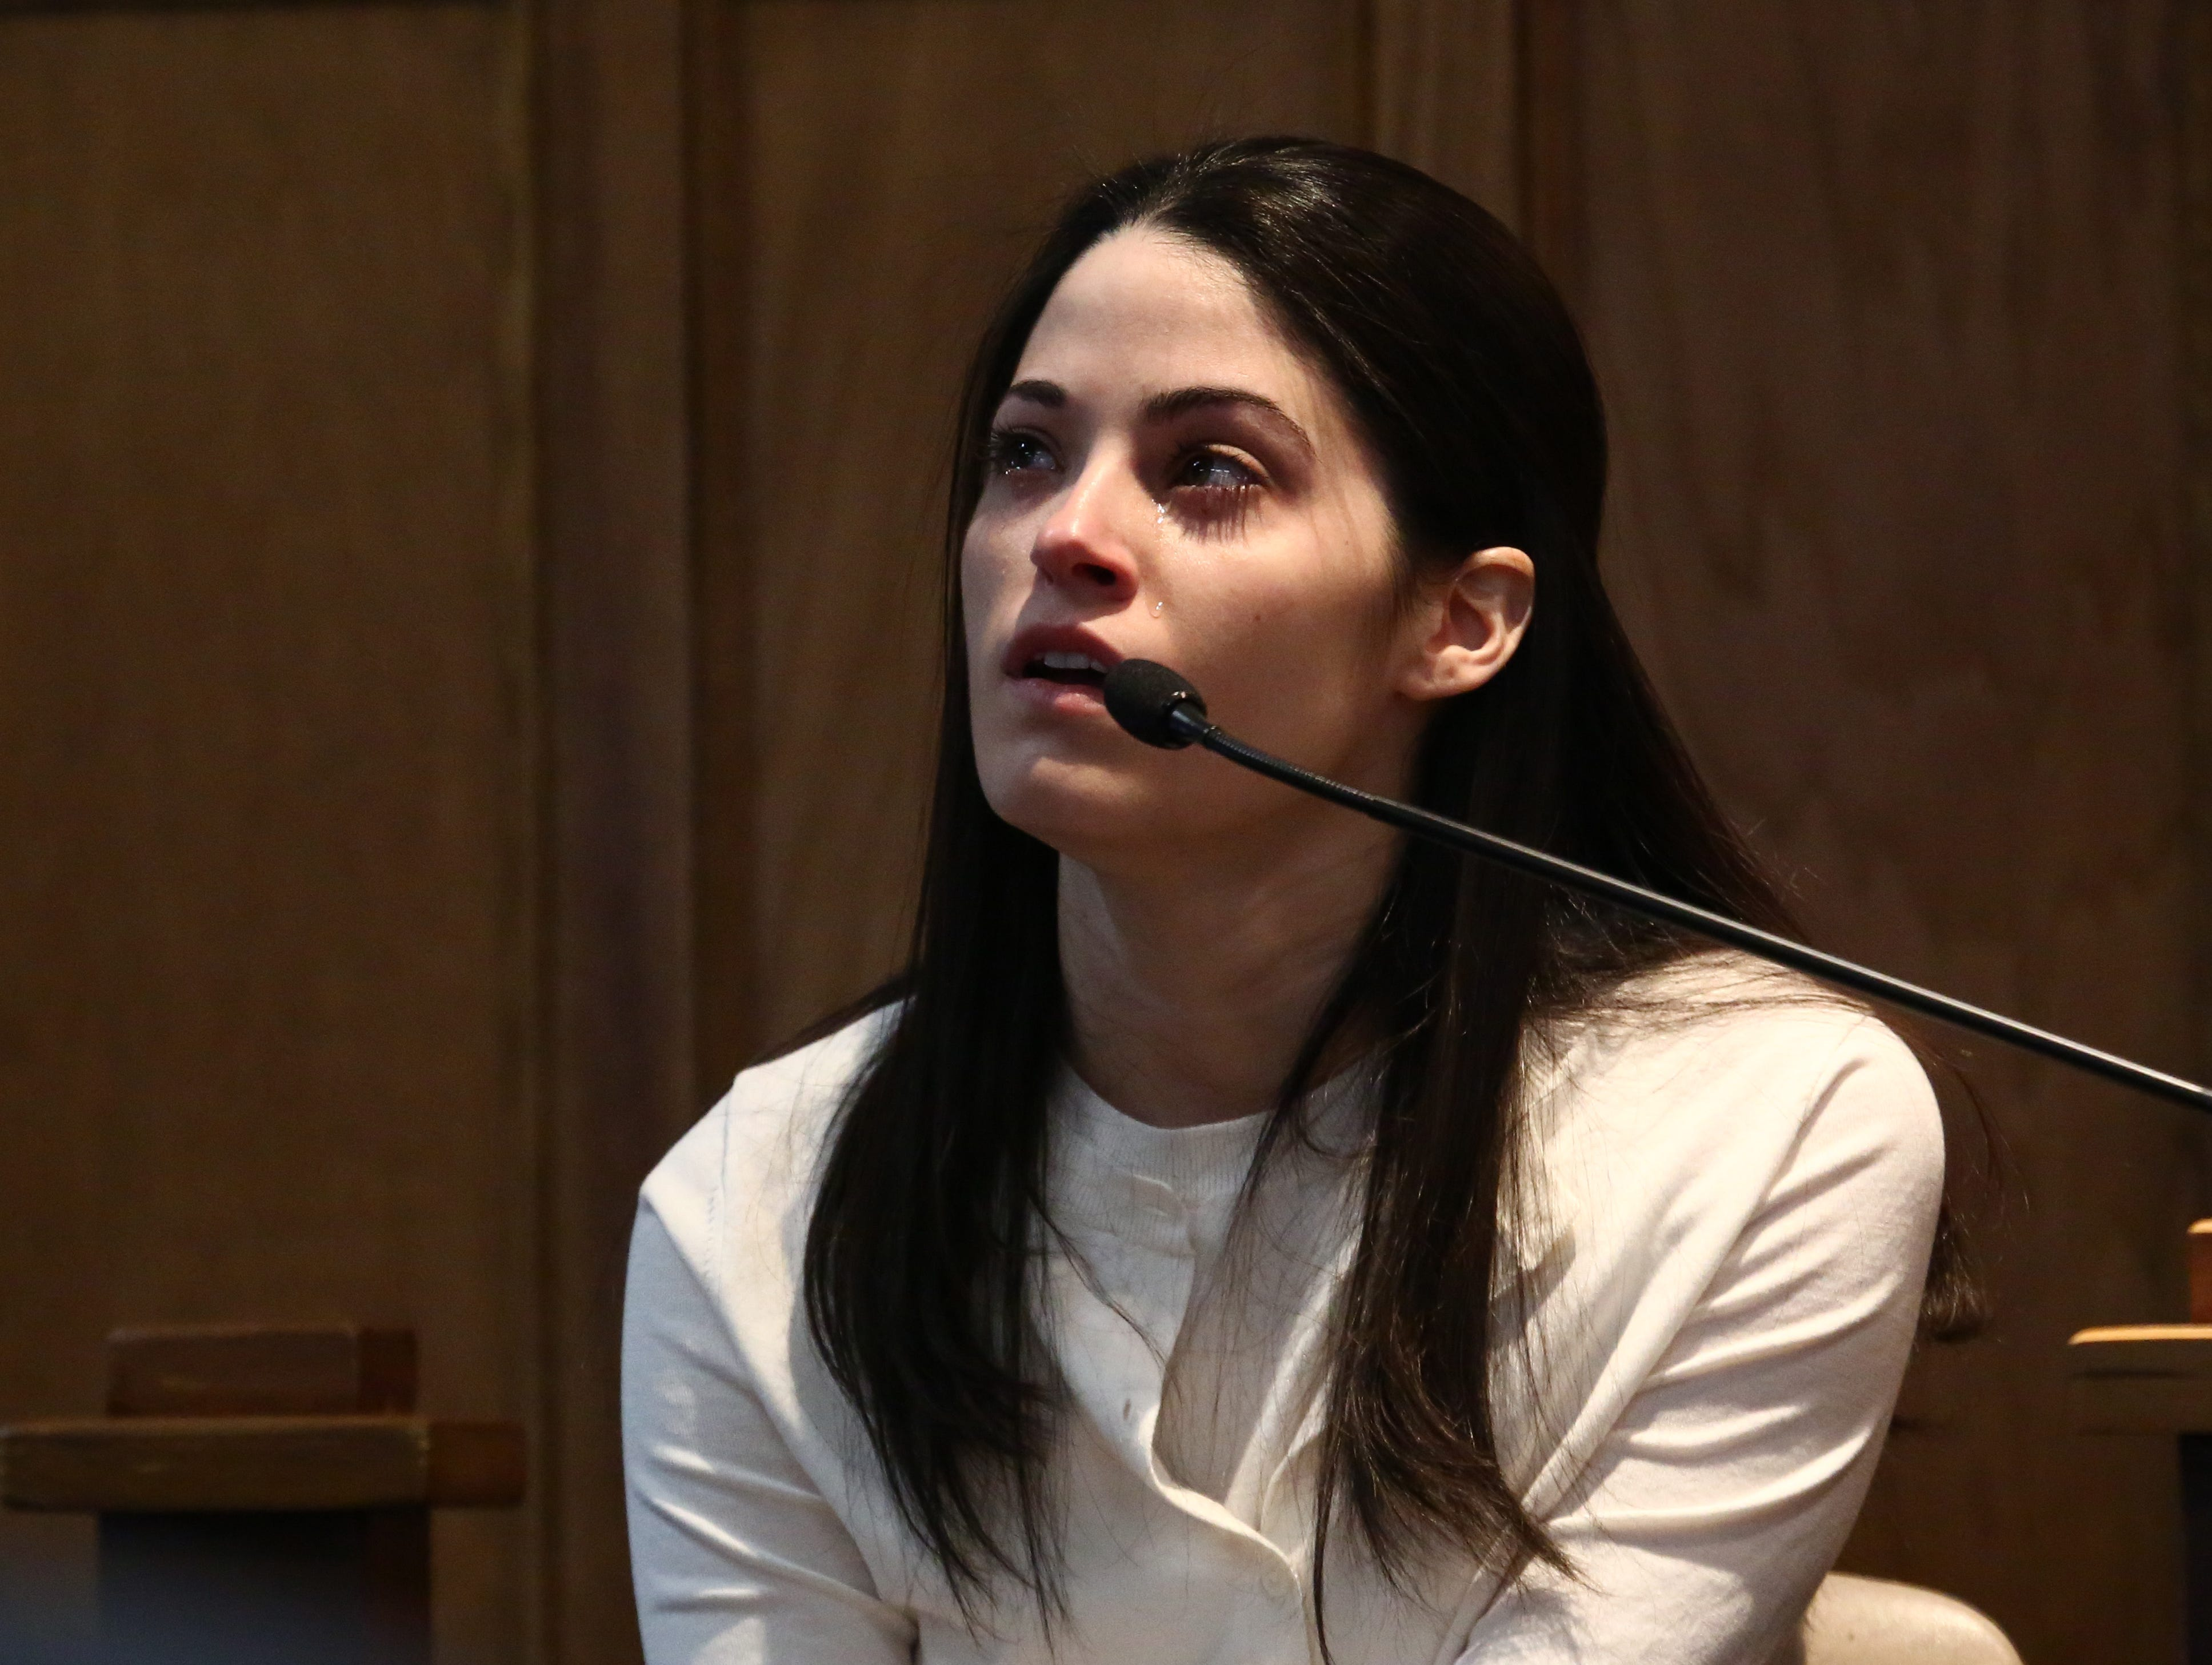 Nicole Addimando on the witness stand during her murder trial in the courtroom of Hon. Edward McLoughlin on March 25, 2019.